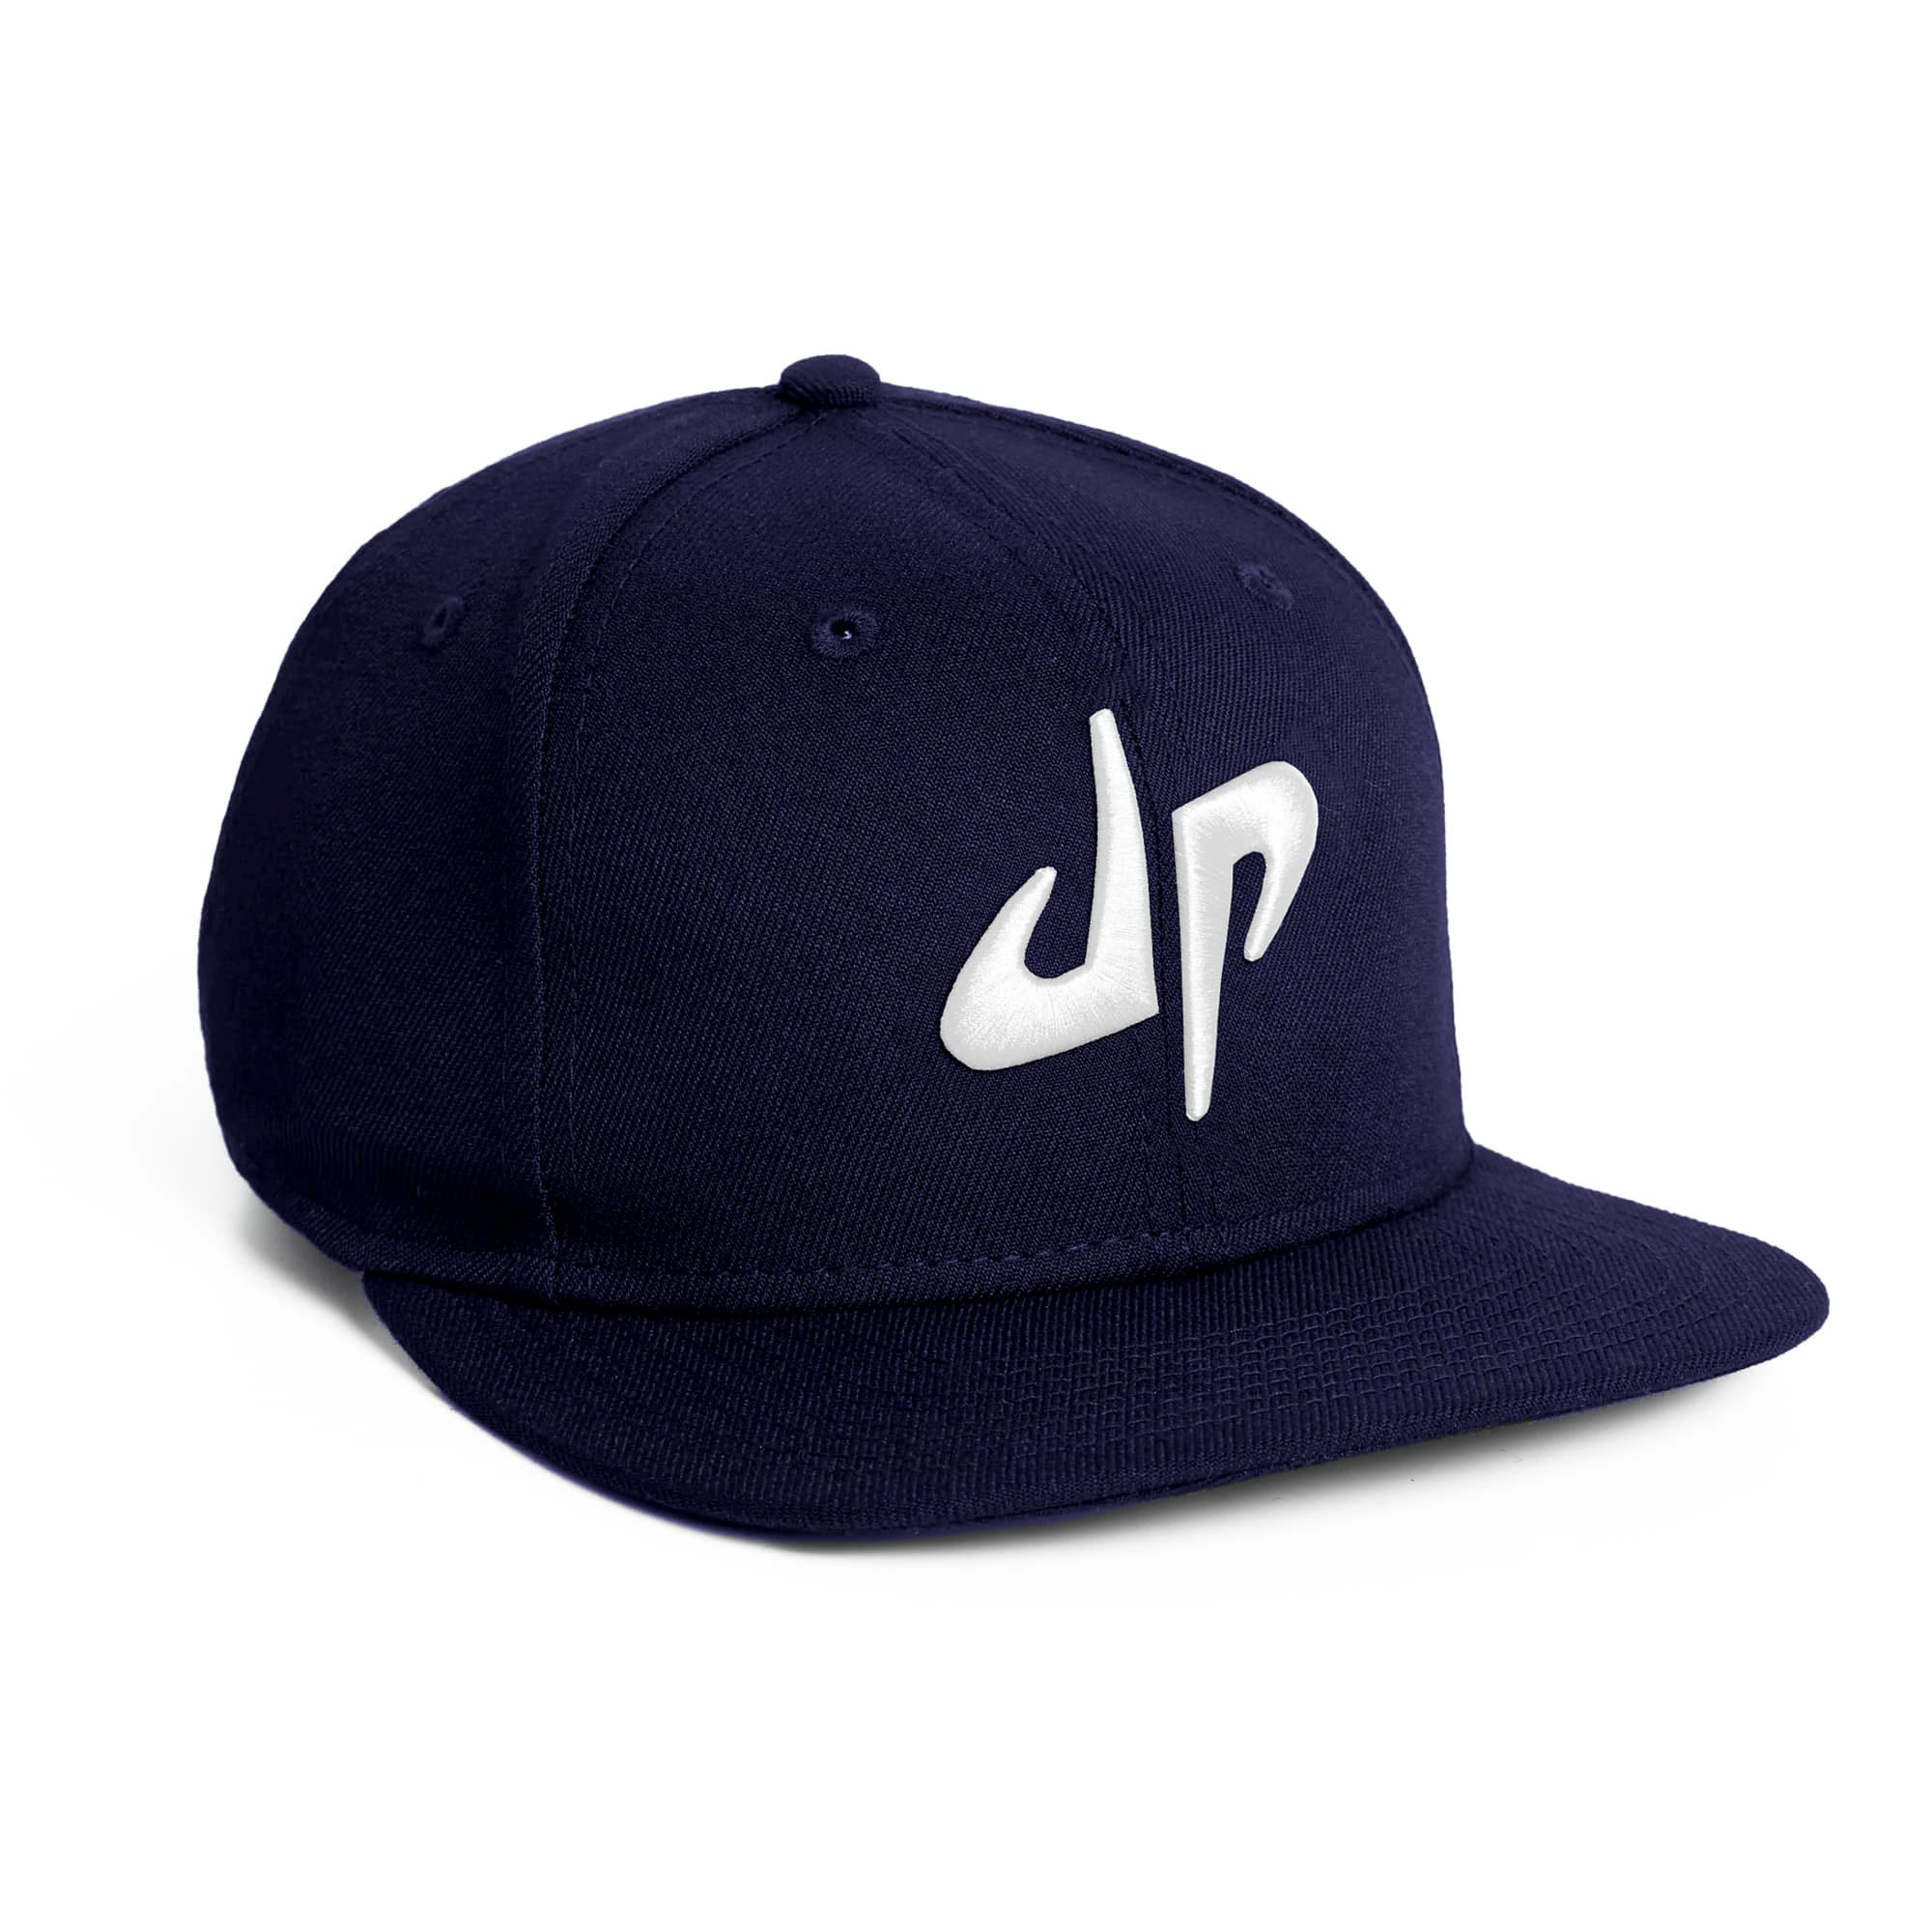 DP X New Era 9Fifty Snapback // Navy + White